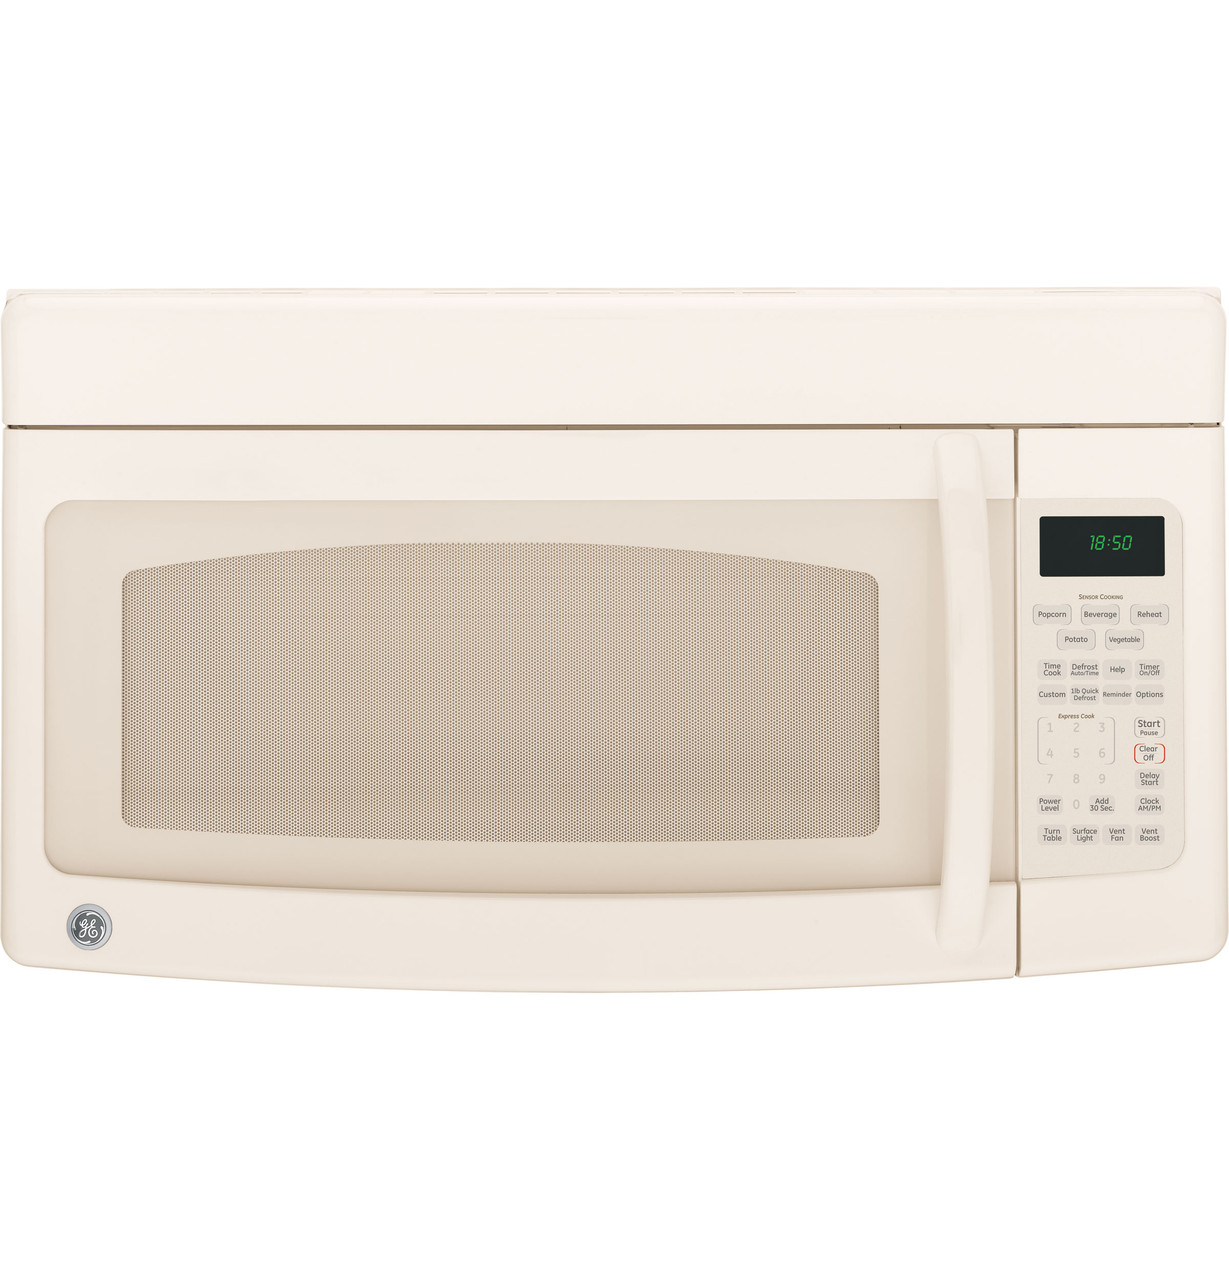 ge spacemaker over the range microwave oven jvm1850dmcc